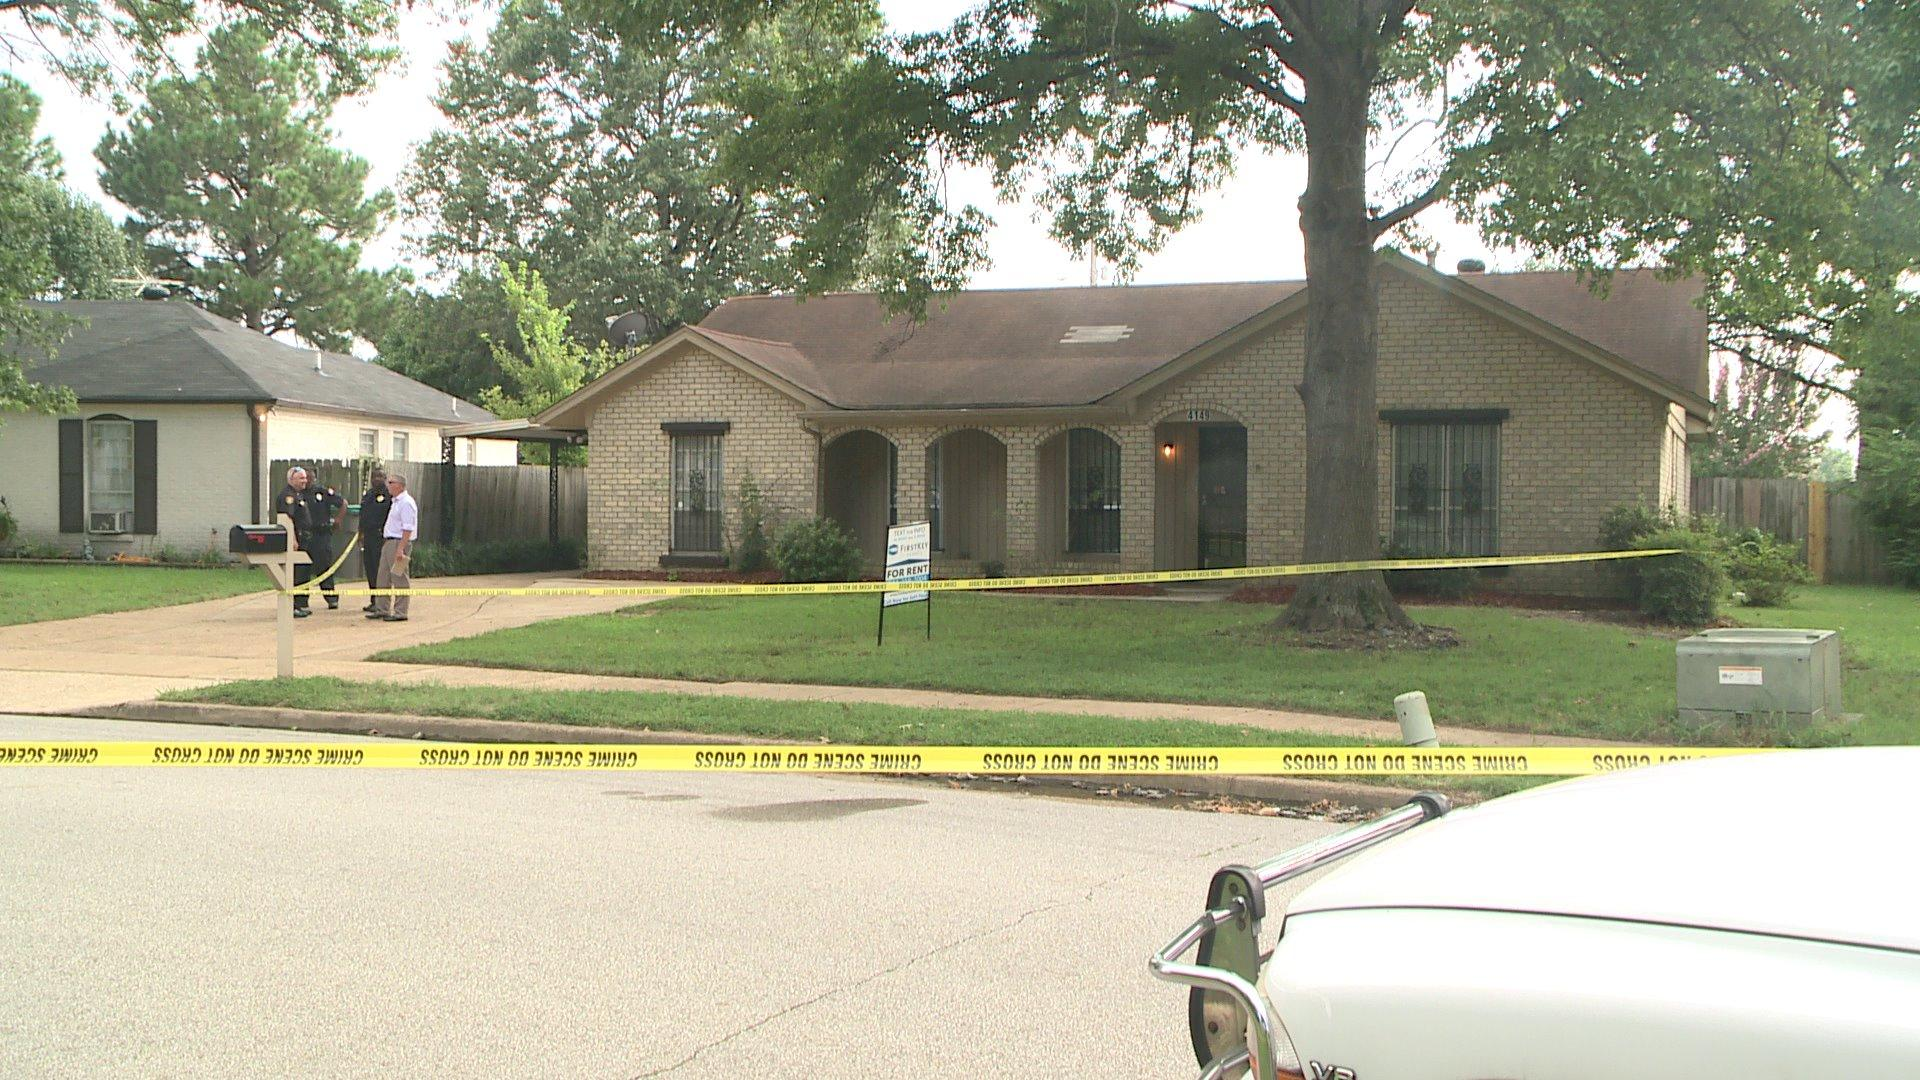 Couple Makes Gruesome Discovery While House Hunting in Memphis